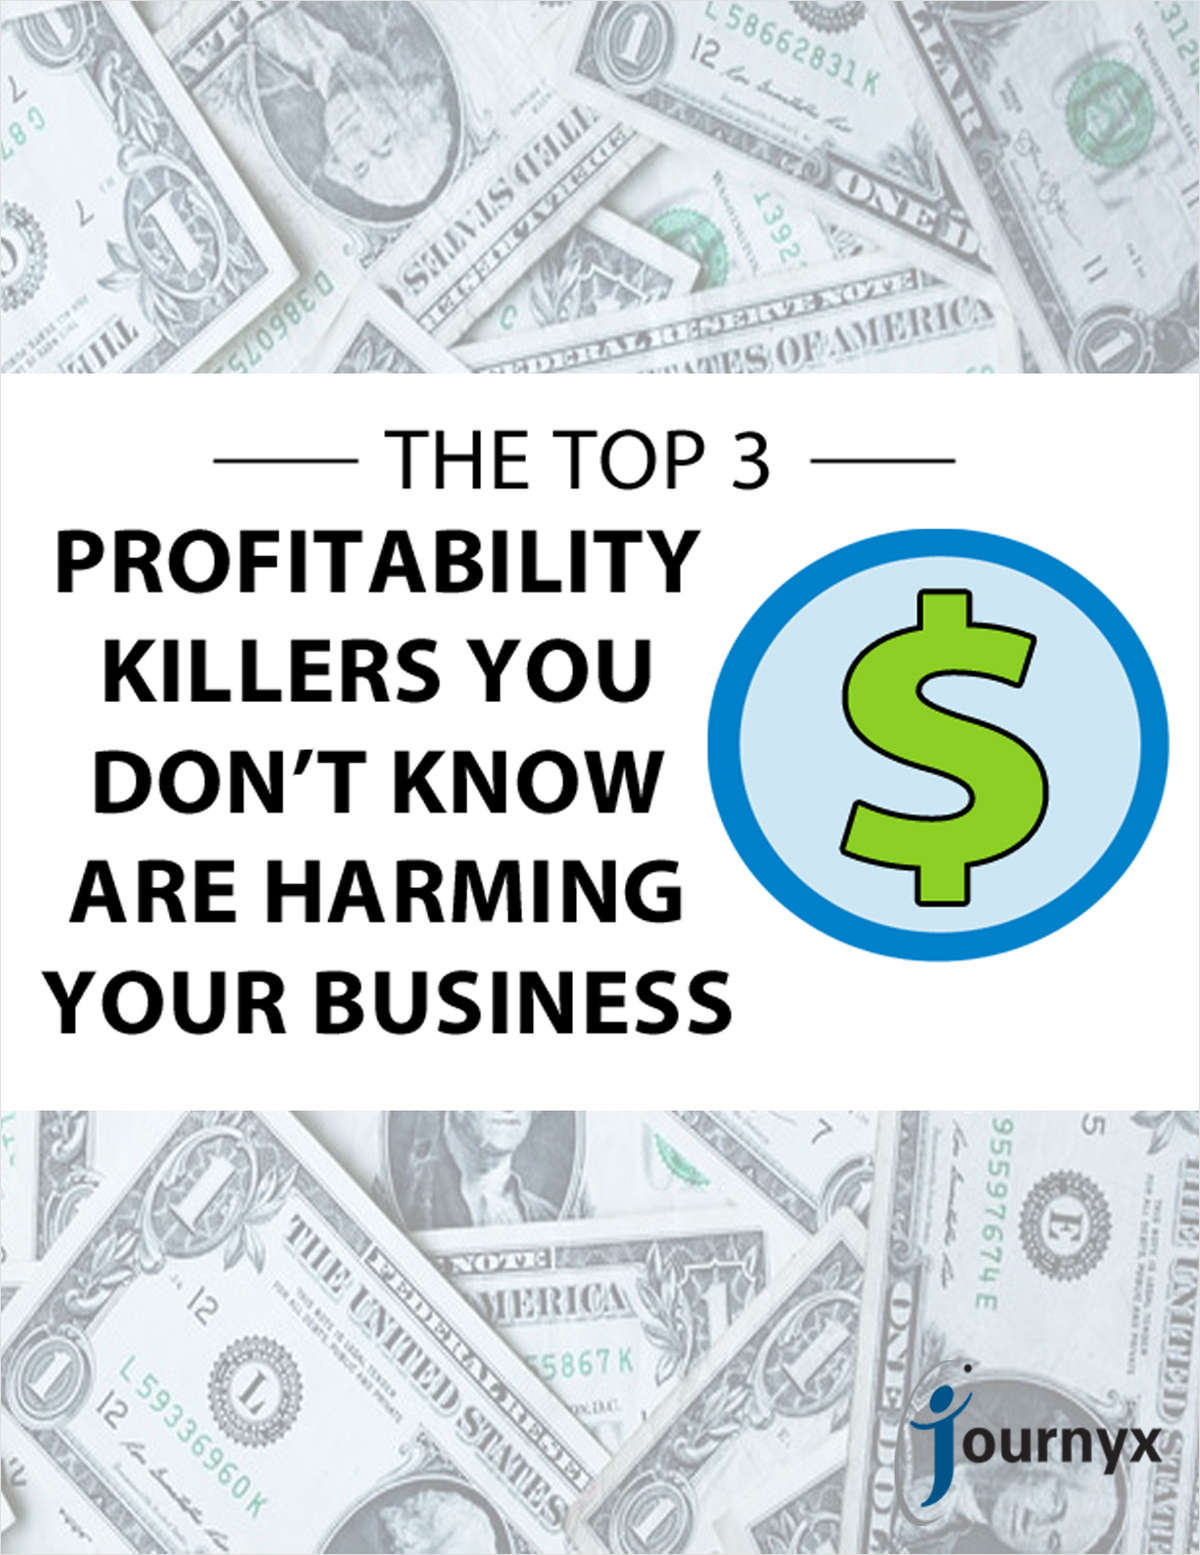 Top 3 Profitability Killers You Don't Know Are Harming Your Business